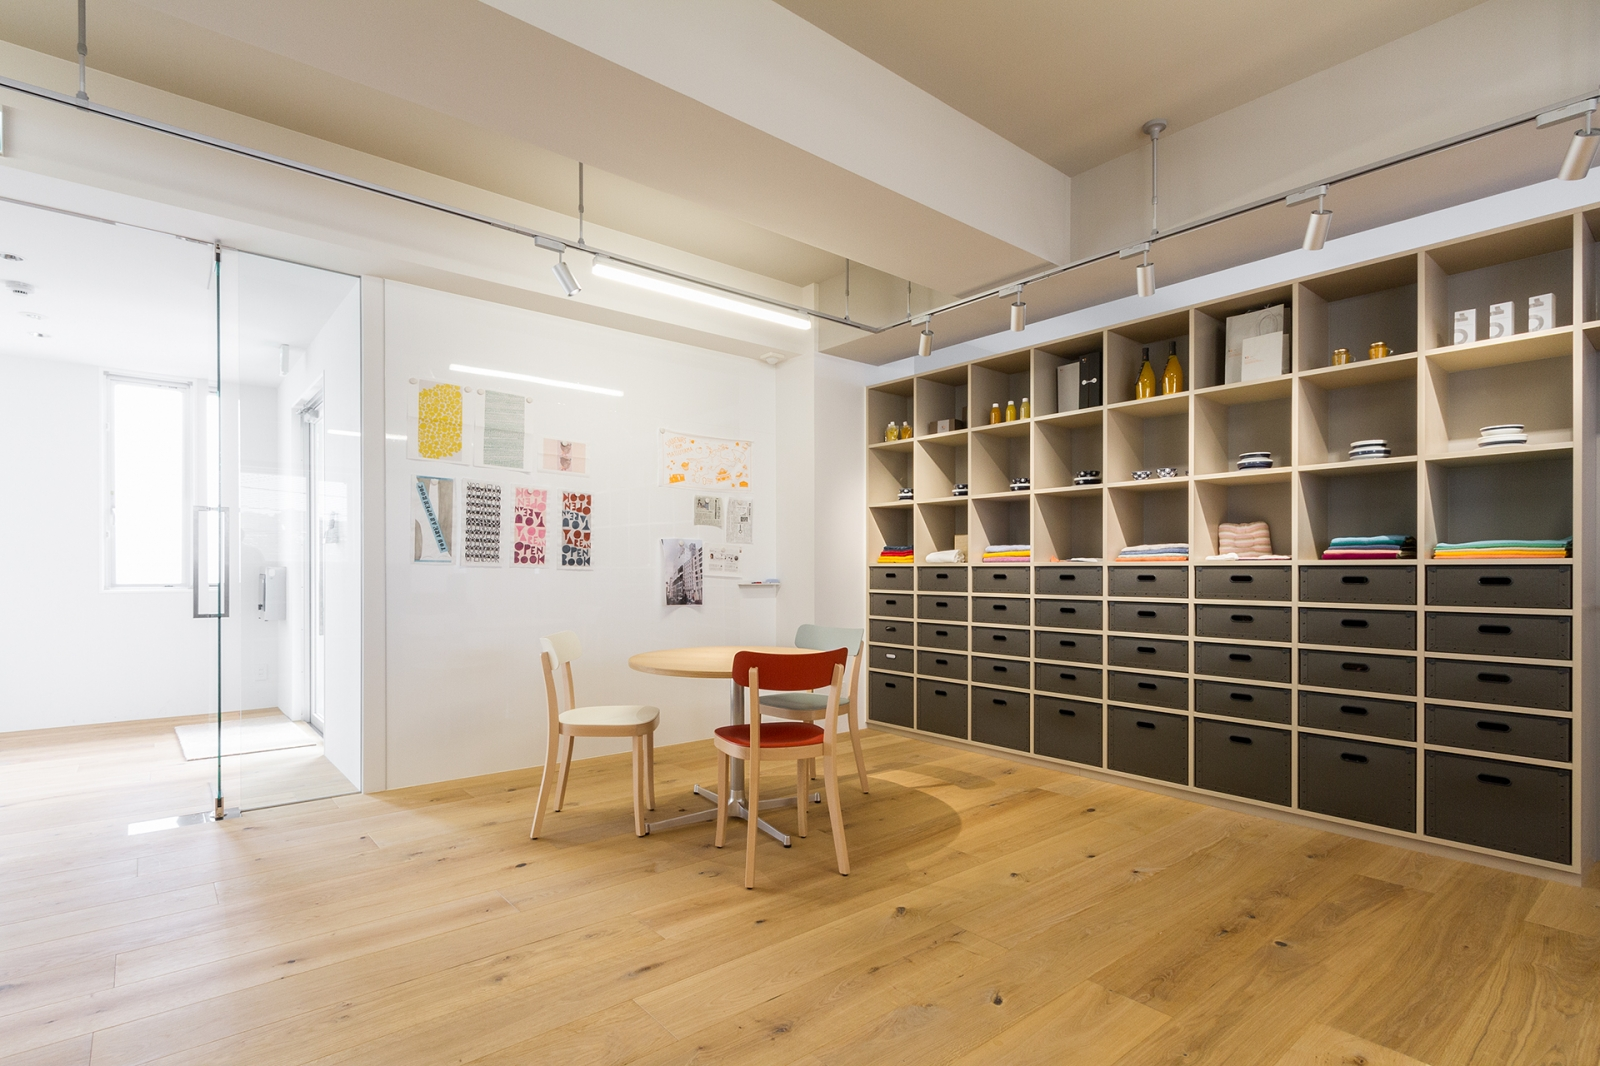 eight one co., ltd. Office-image2